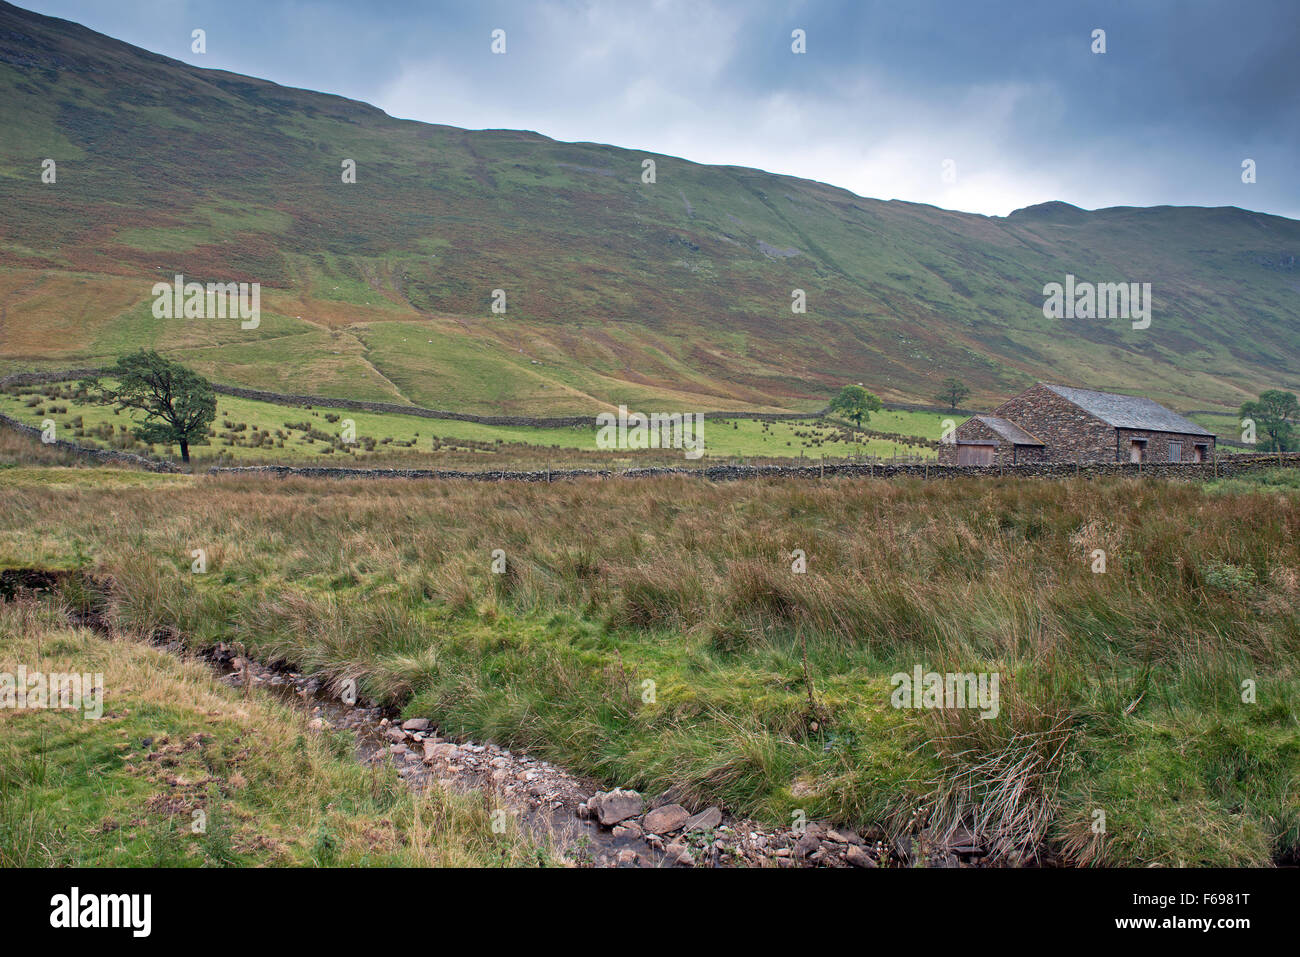 A derelict building in the Boredale Valley, Martindale, Lake District, Cumbria, England, Uk, Gb. - Stock Image